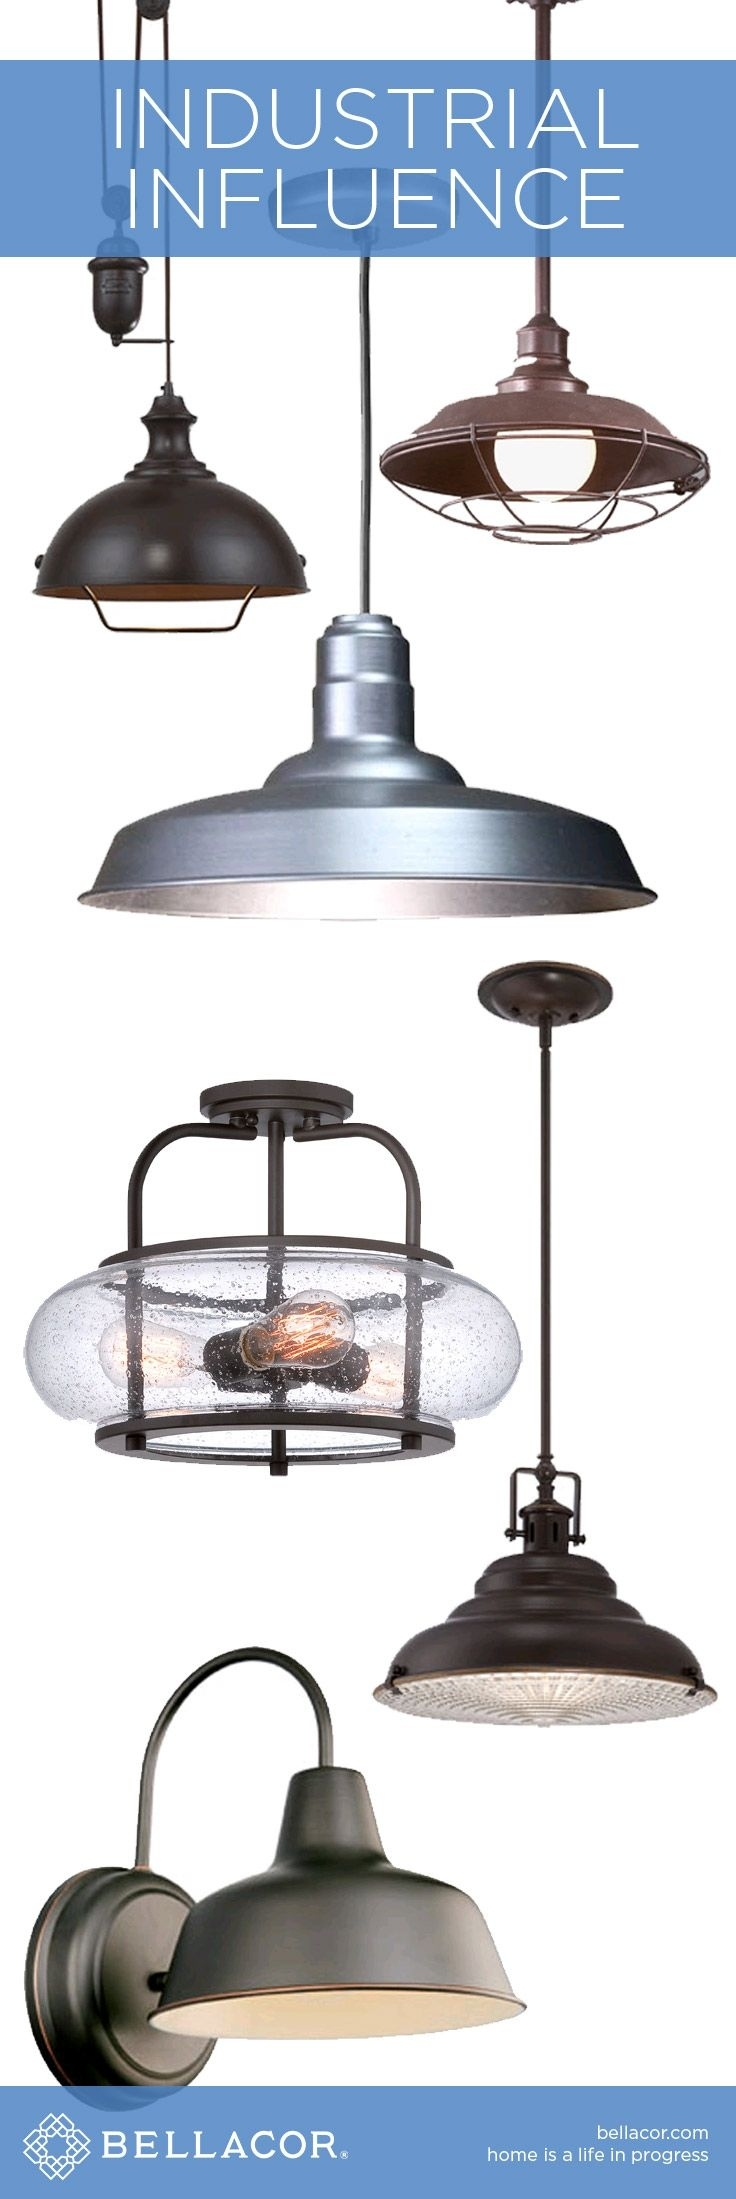 178 Best ~Lighting~ Images On Pinterest | Globe Pendant Light, Lamps With Regard To Modern Rustic Outdoor Lighting Att Wayfair (View 11 of 15)